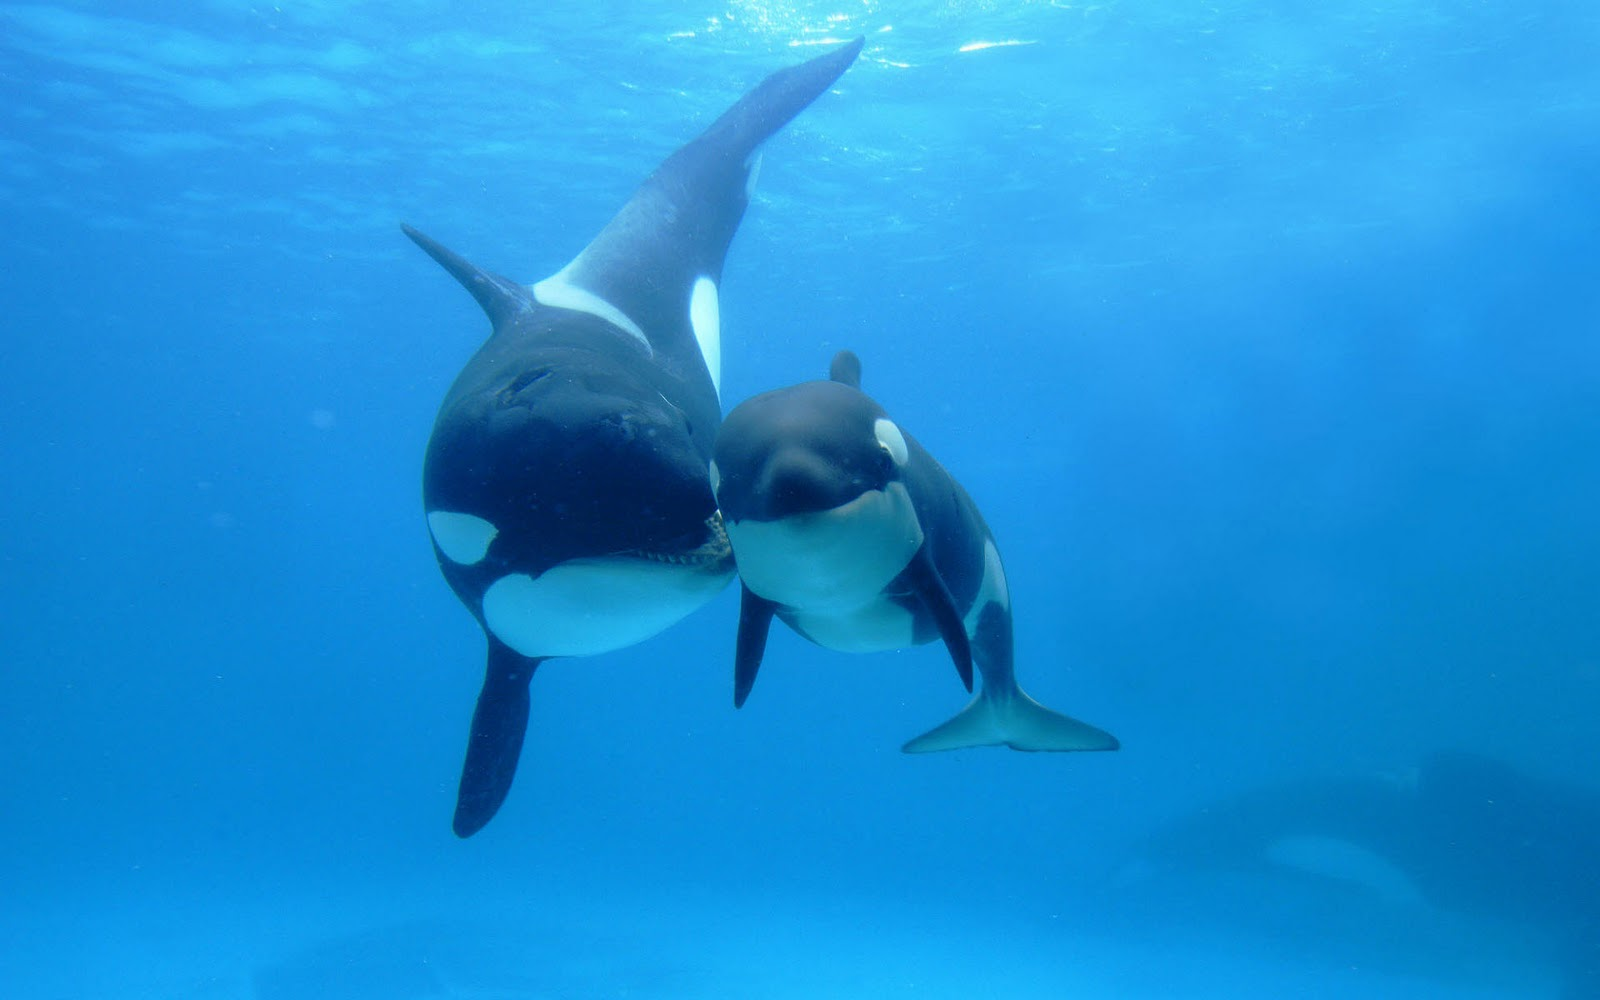 Killer whales wallpapers pets cute and docile killer whales wallpapers altavistaventures Image collections